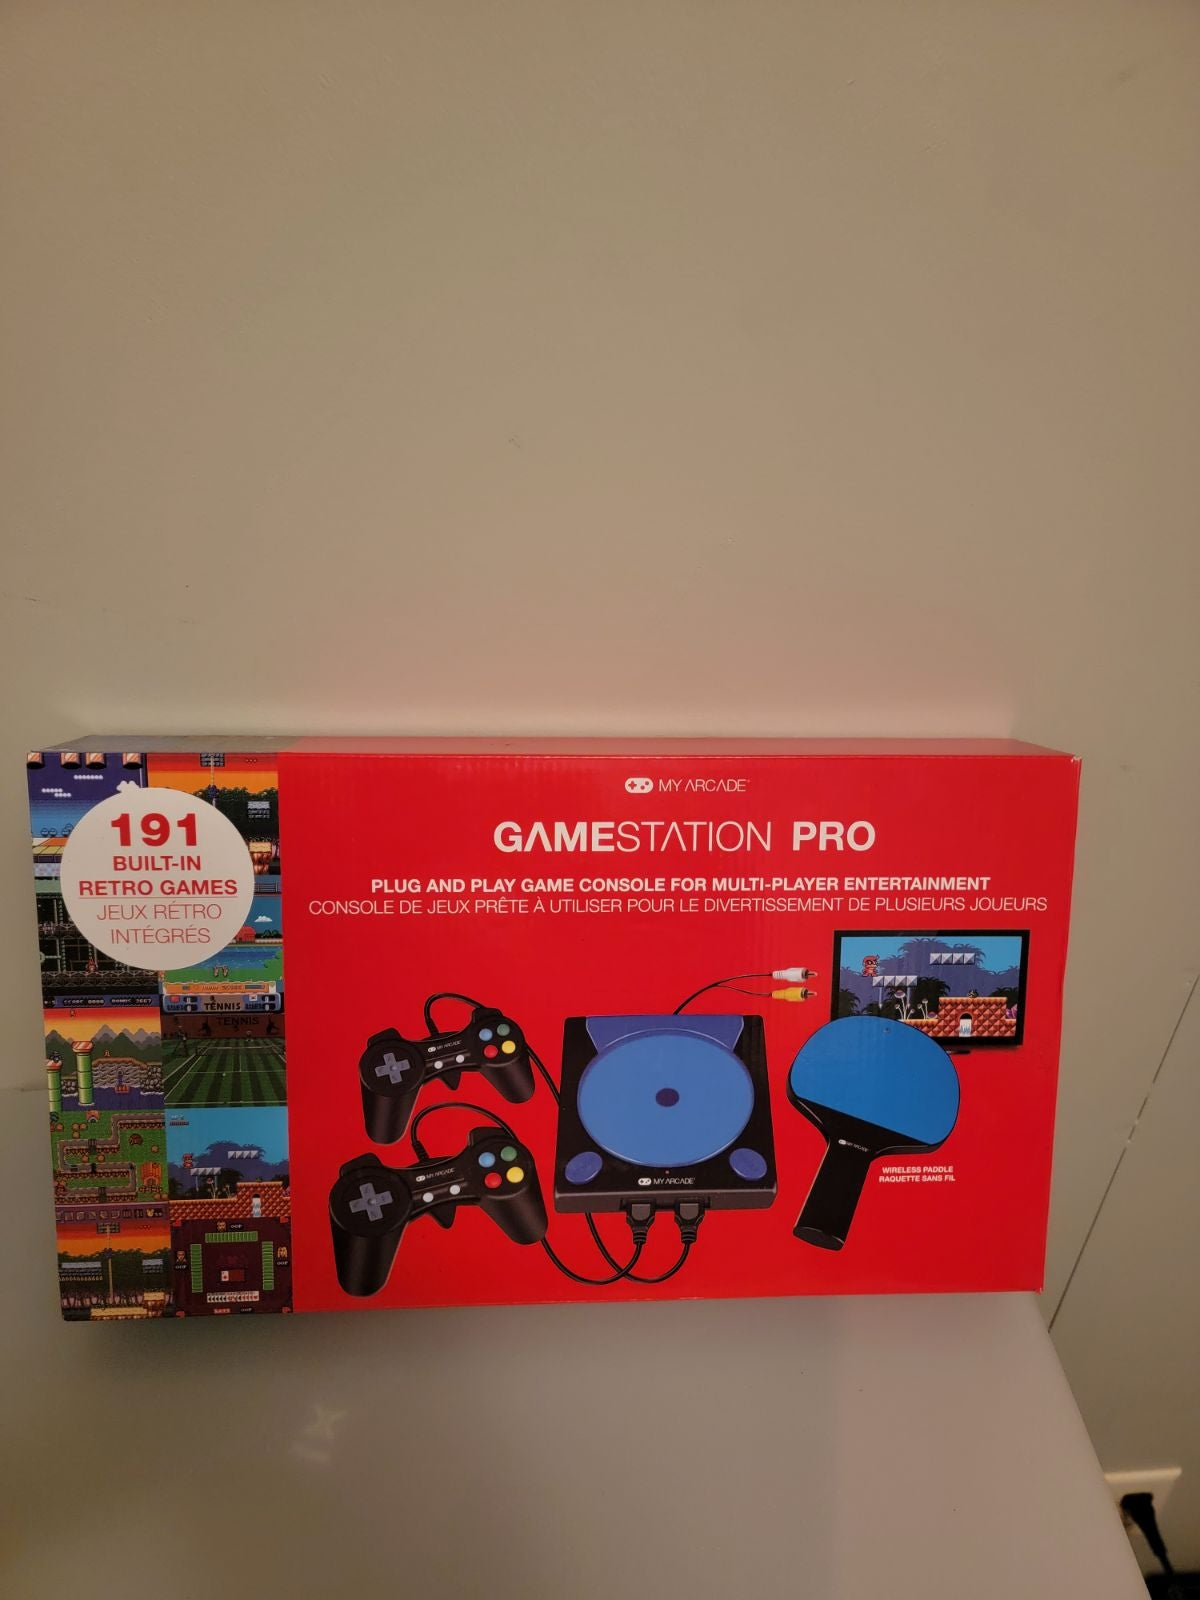 Game station pro